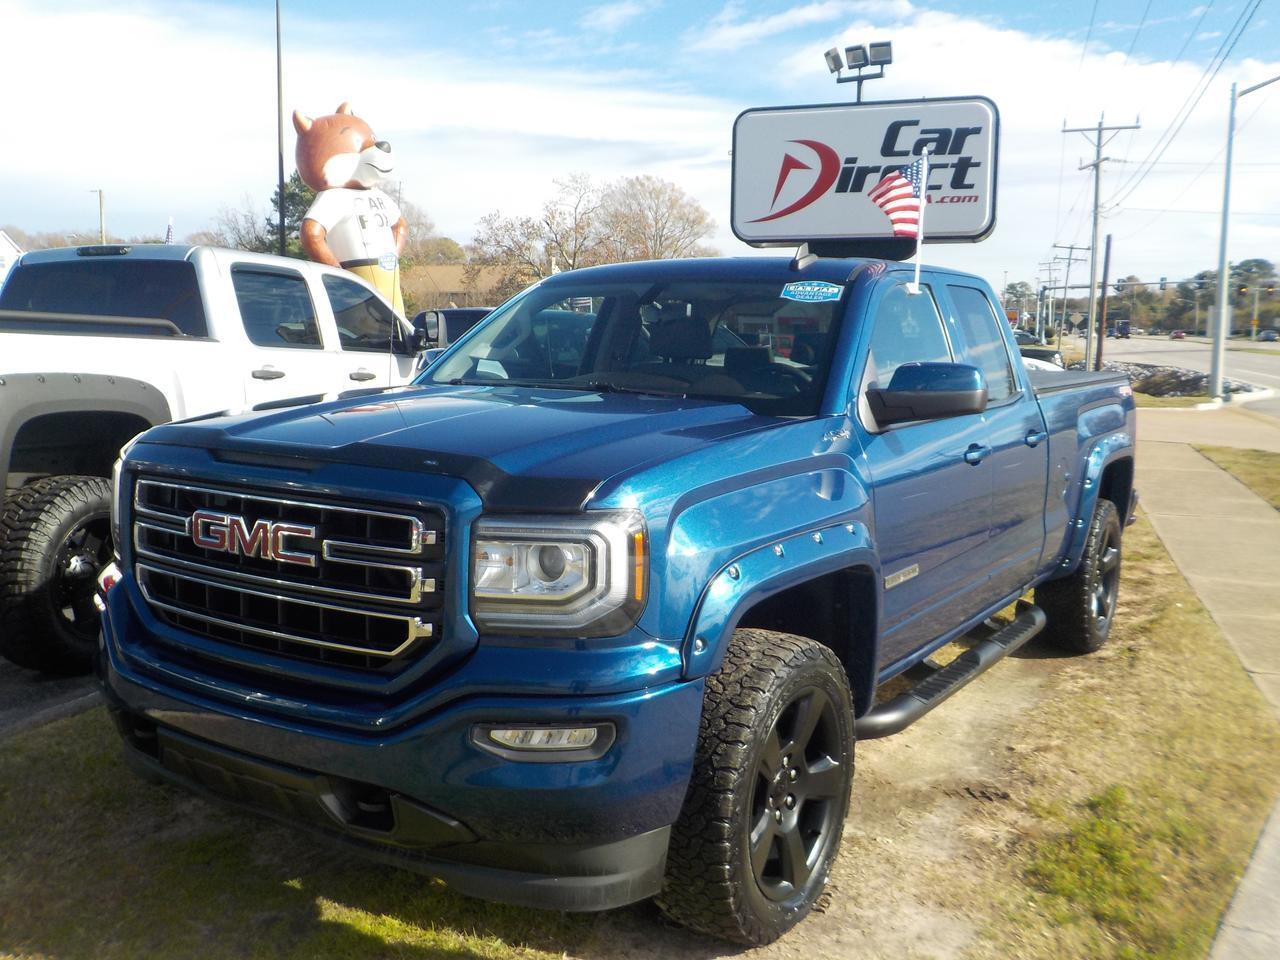 2016 GMC SIERRA 1500 ELEVATION DOUBLE CAB 4X4, BLUETOOTH WIRELESS, TOW PKG, BACKUP CAM, VERY CLEAN, ONLY 68K MILES! Virginia Beach VA